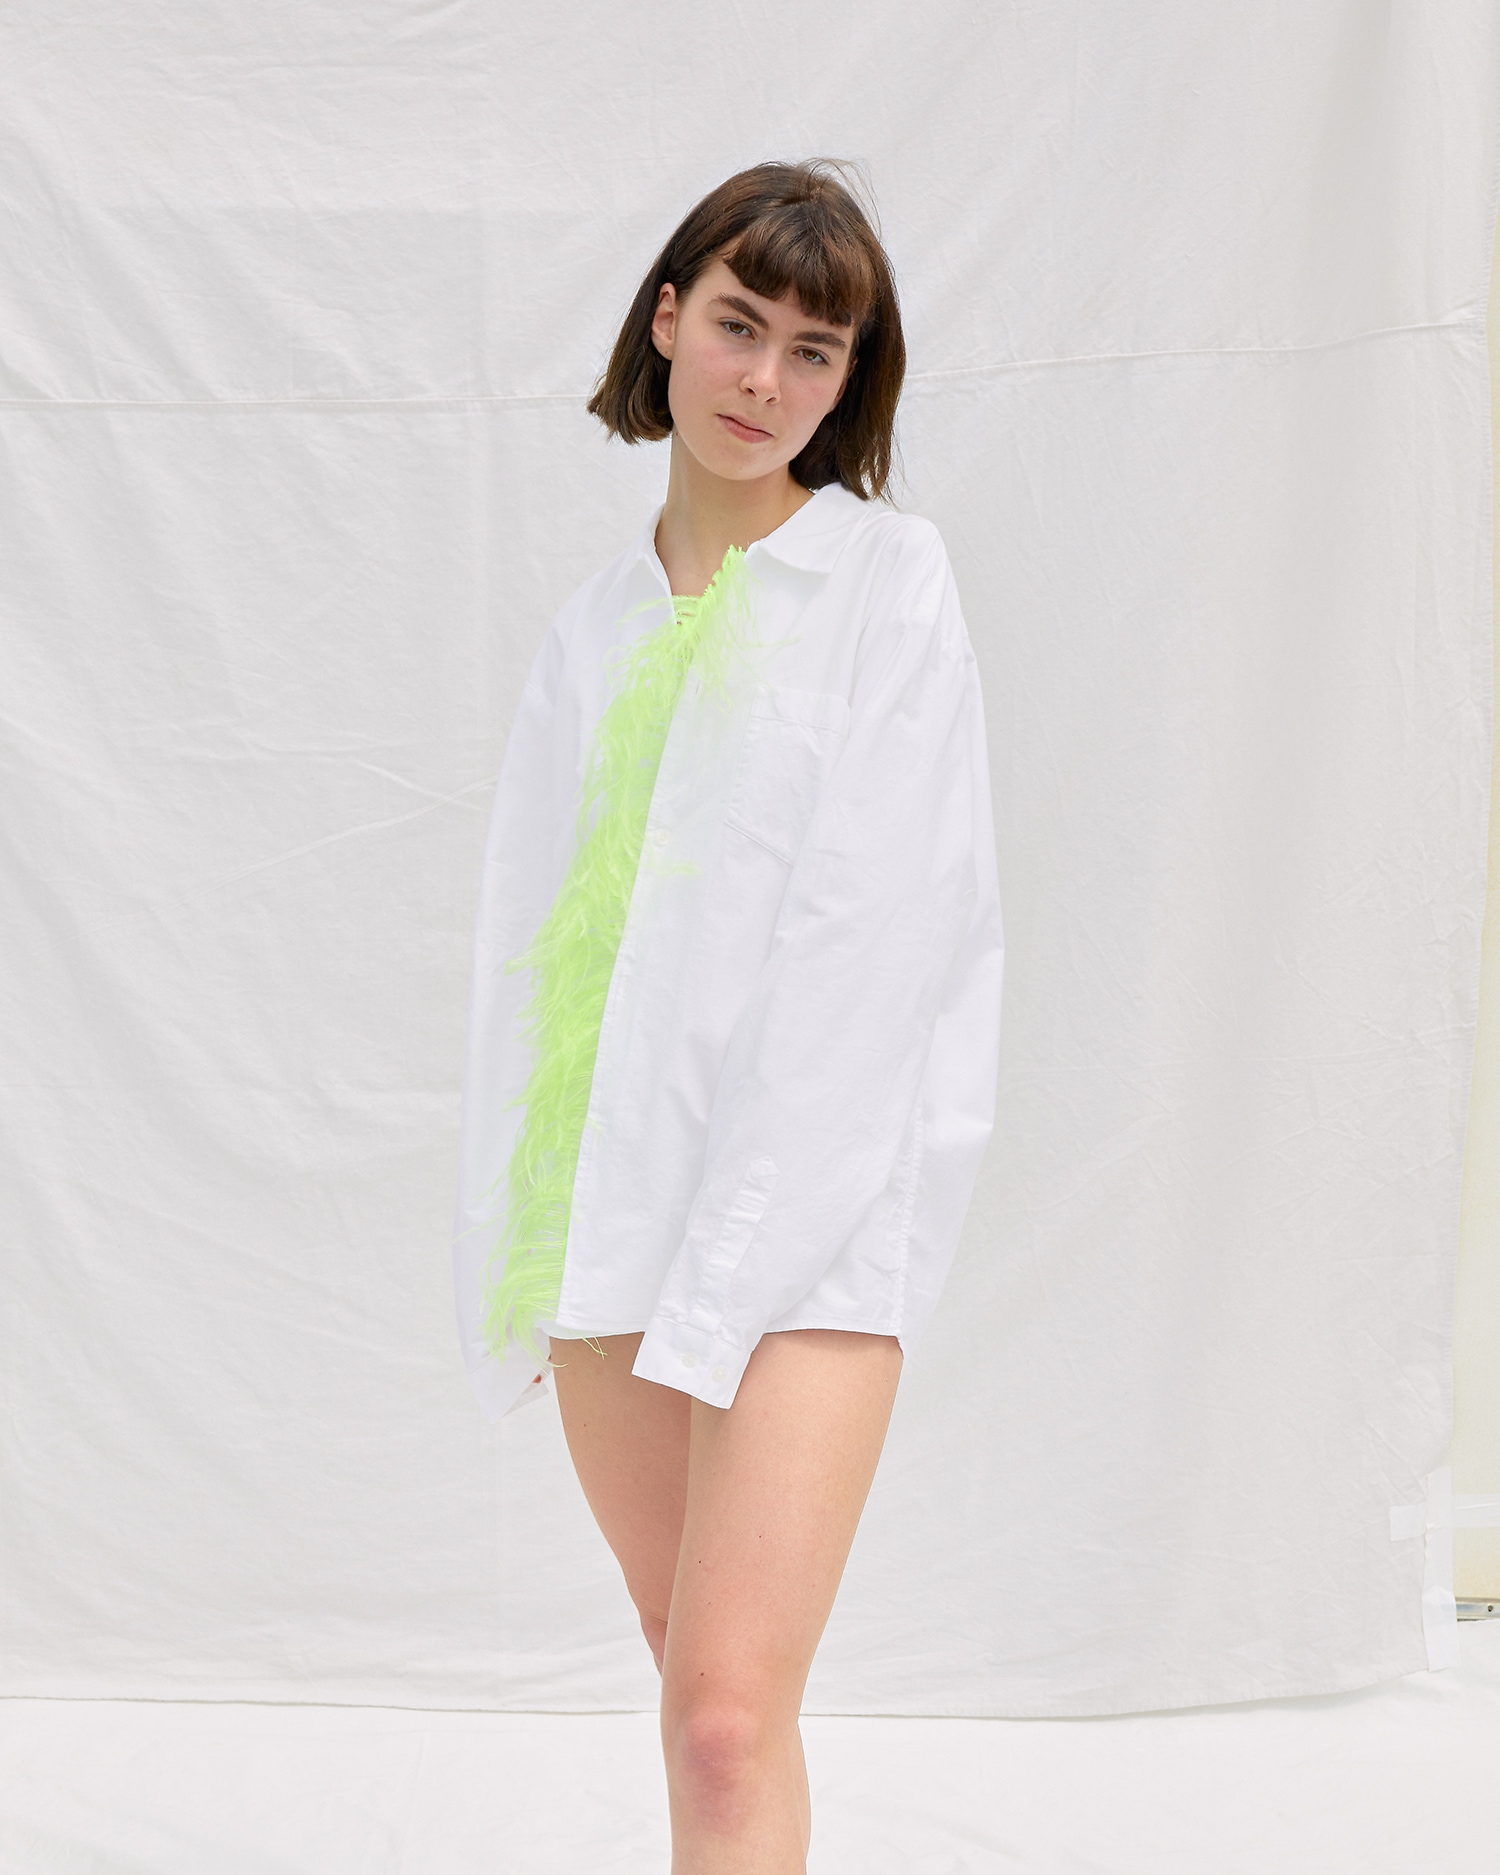 Feather Shirt by One DNA. Reworked Dress Shirt with Bright Green Feather Trim.